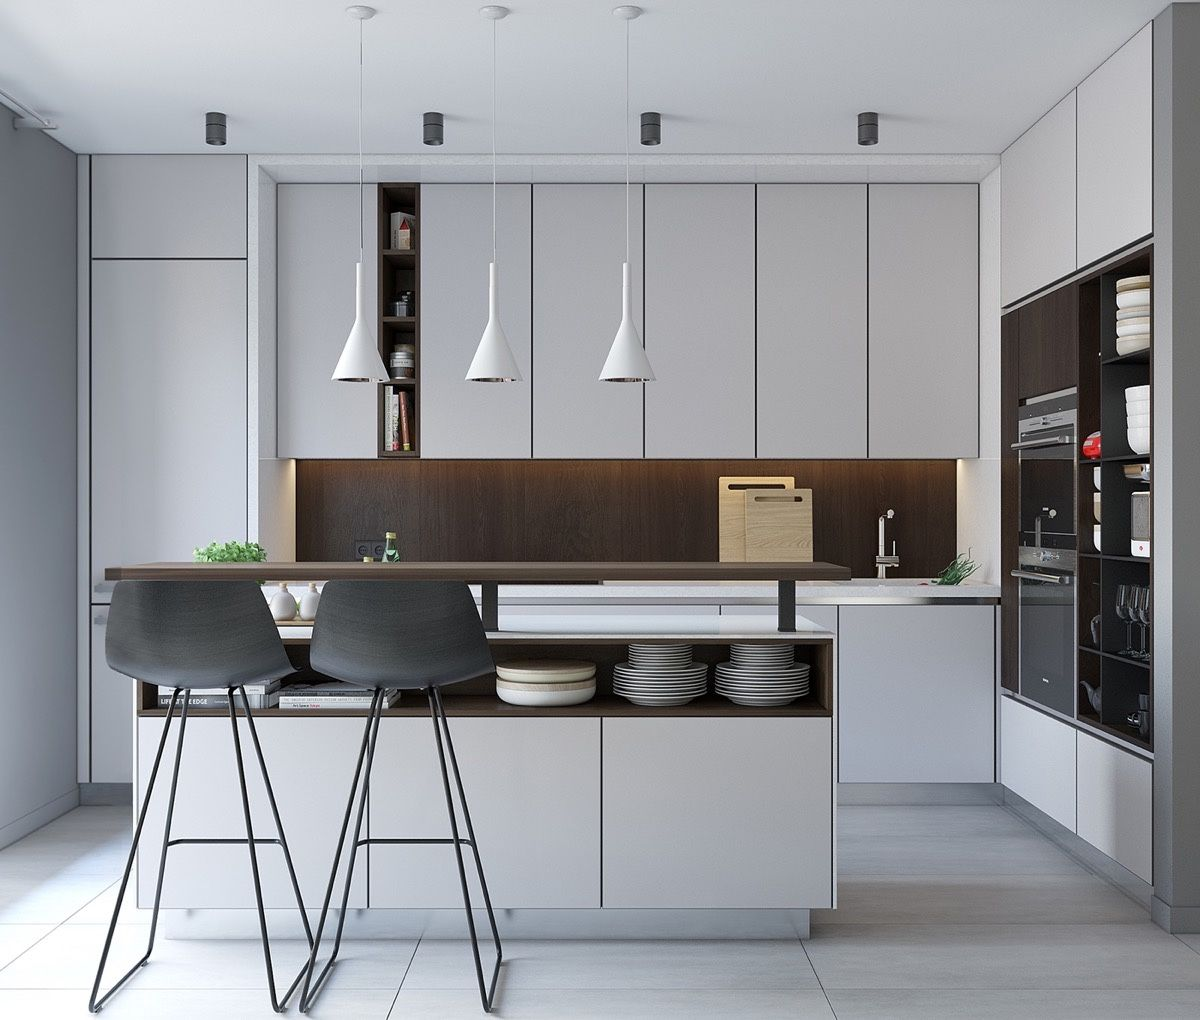 Marvelous For So Many Families, The Kitchen Is A Focal Point Of The Home. Not Only Do  Parents Spend Hours Each Week Cooking, Children Sidle Up To The Kitchen Bar  For ...